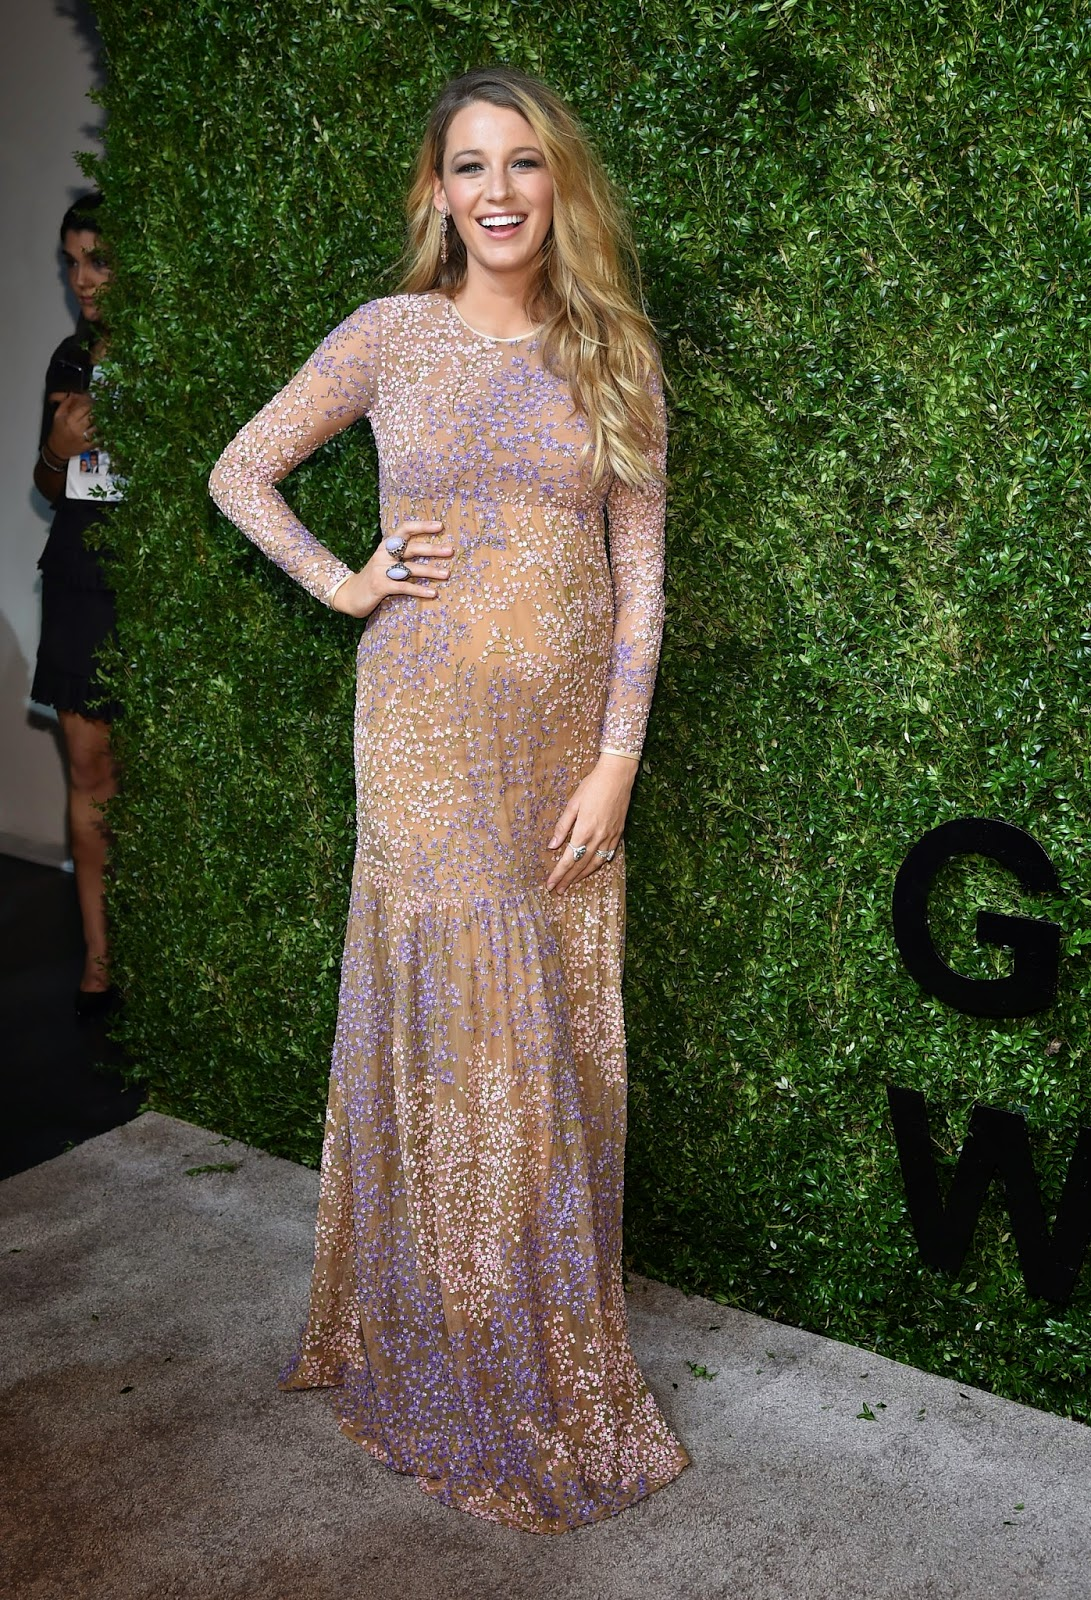 Stella Maternity News: Pregnant Blake Lively Glowing in a Lilac Gown ...